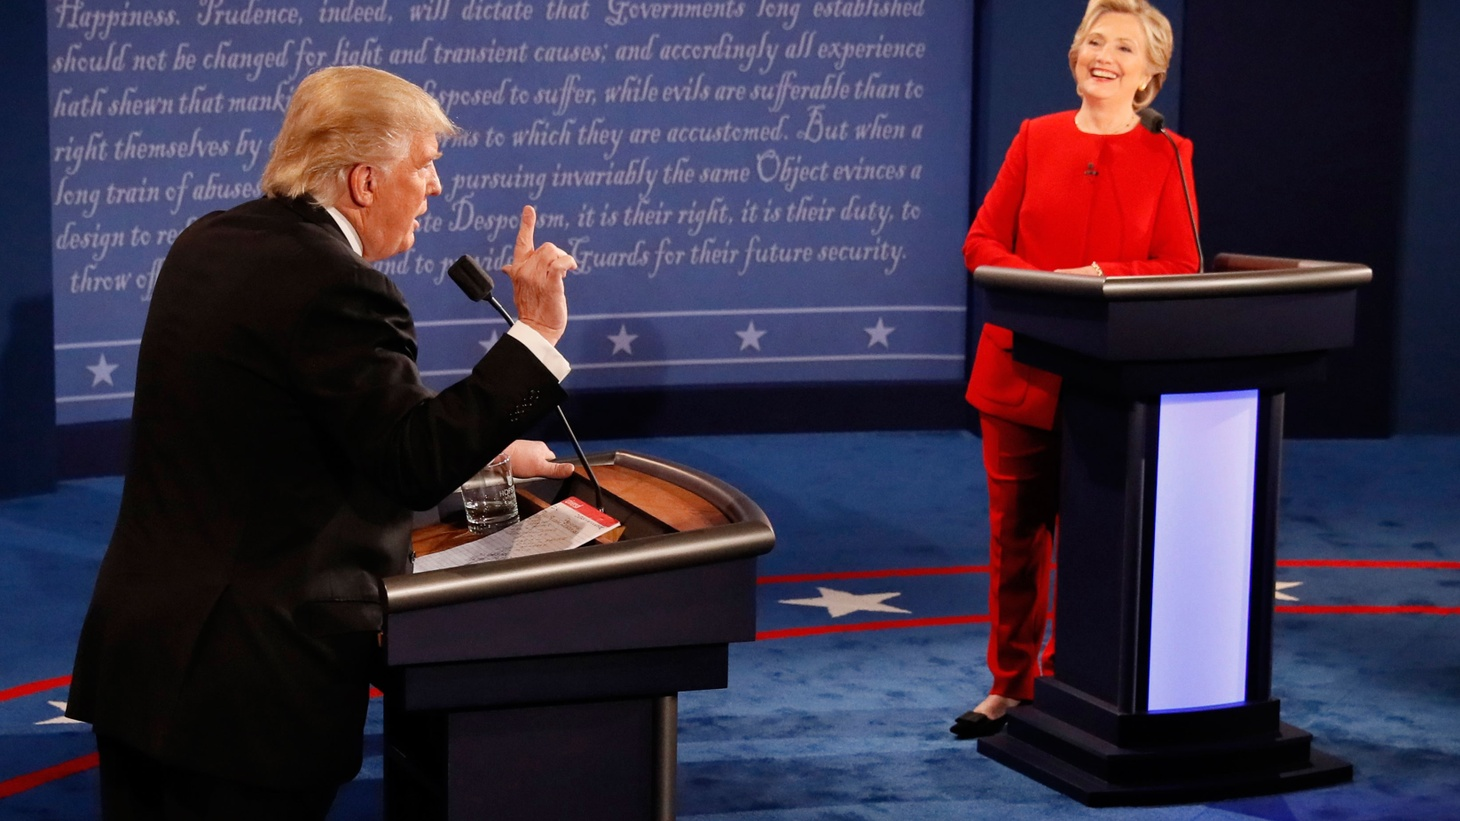 It was the first direct confrontation between the two most unpopular presidential candidates since public opinion polling began. It was mostly about personalities and stage presence -- while touching on jobs, race and gender.